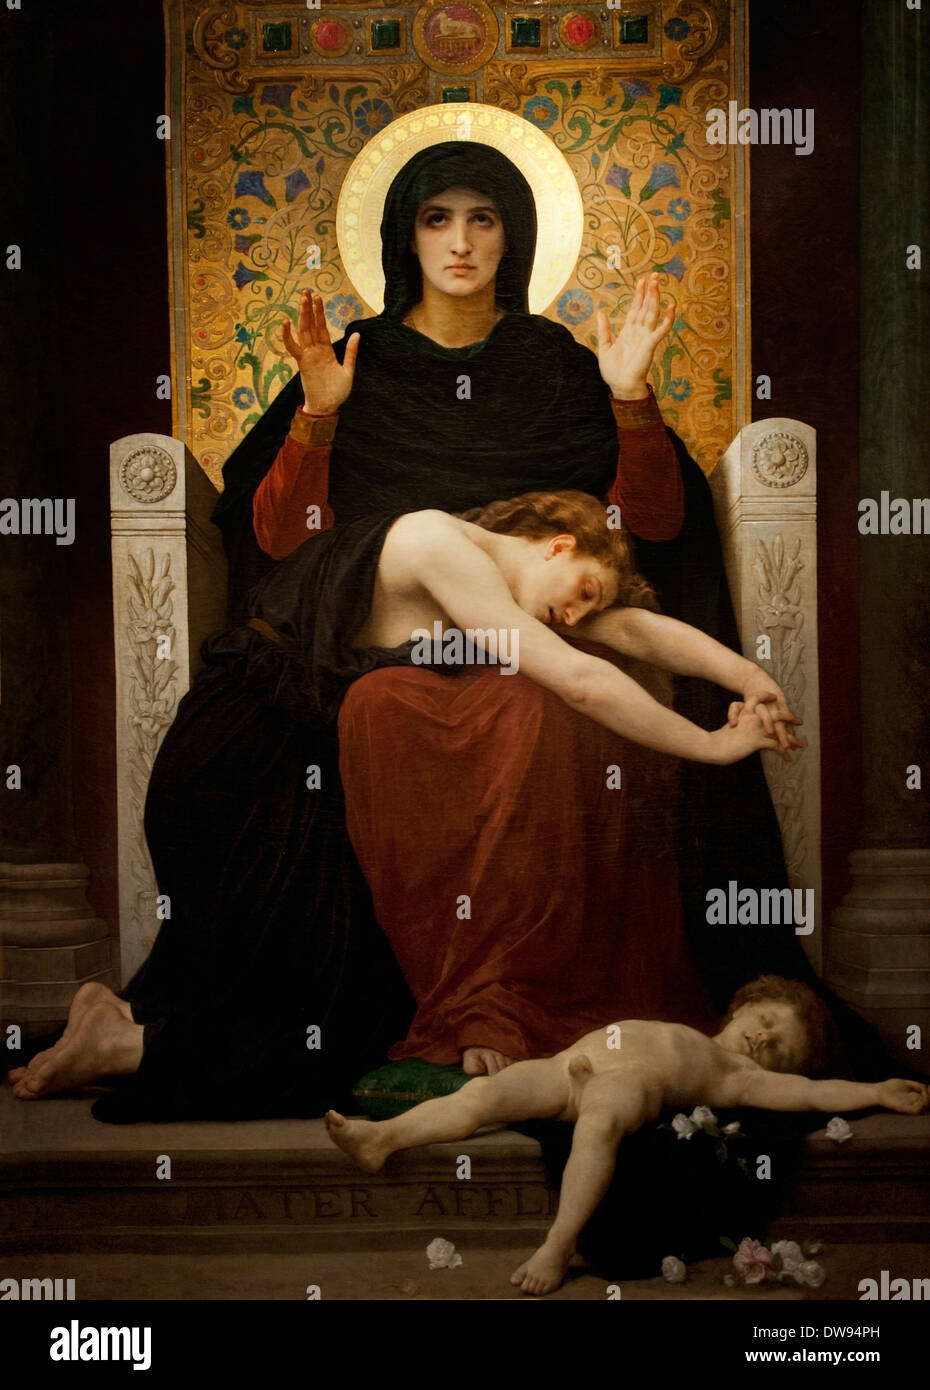 Consoler Virgin - Virgin consoling 1877  William Adolphe Bouguereau (1825-1905)  France French - Stock Image